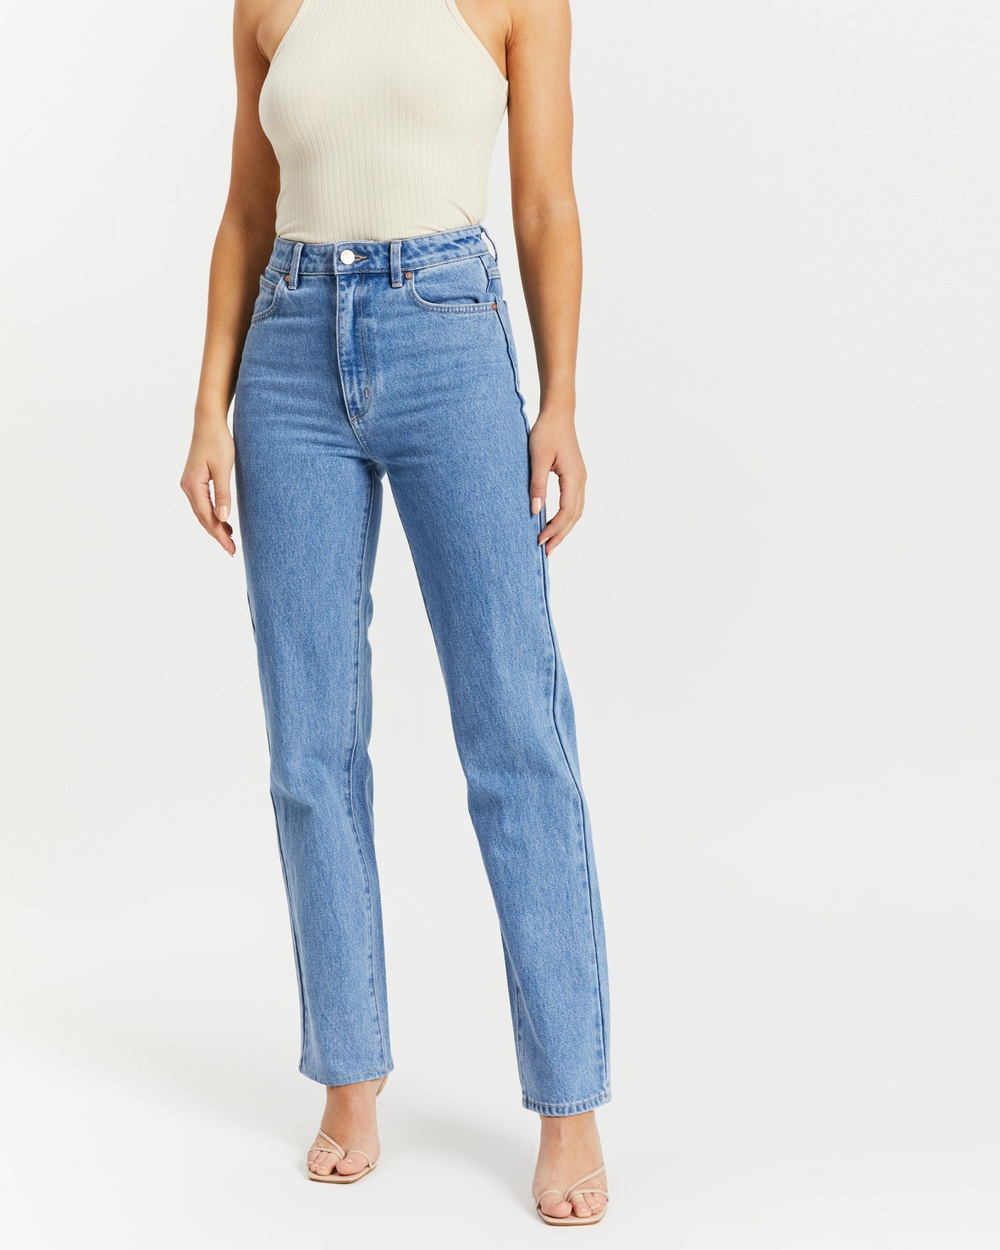 Abrand A '94 High Straight Jeans High-Waisted Lucy Organic